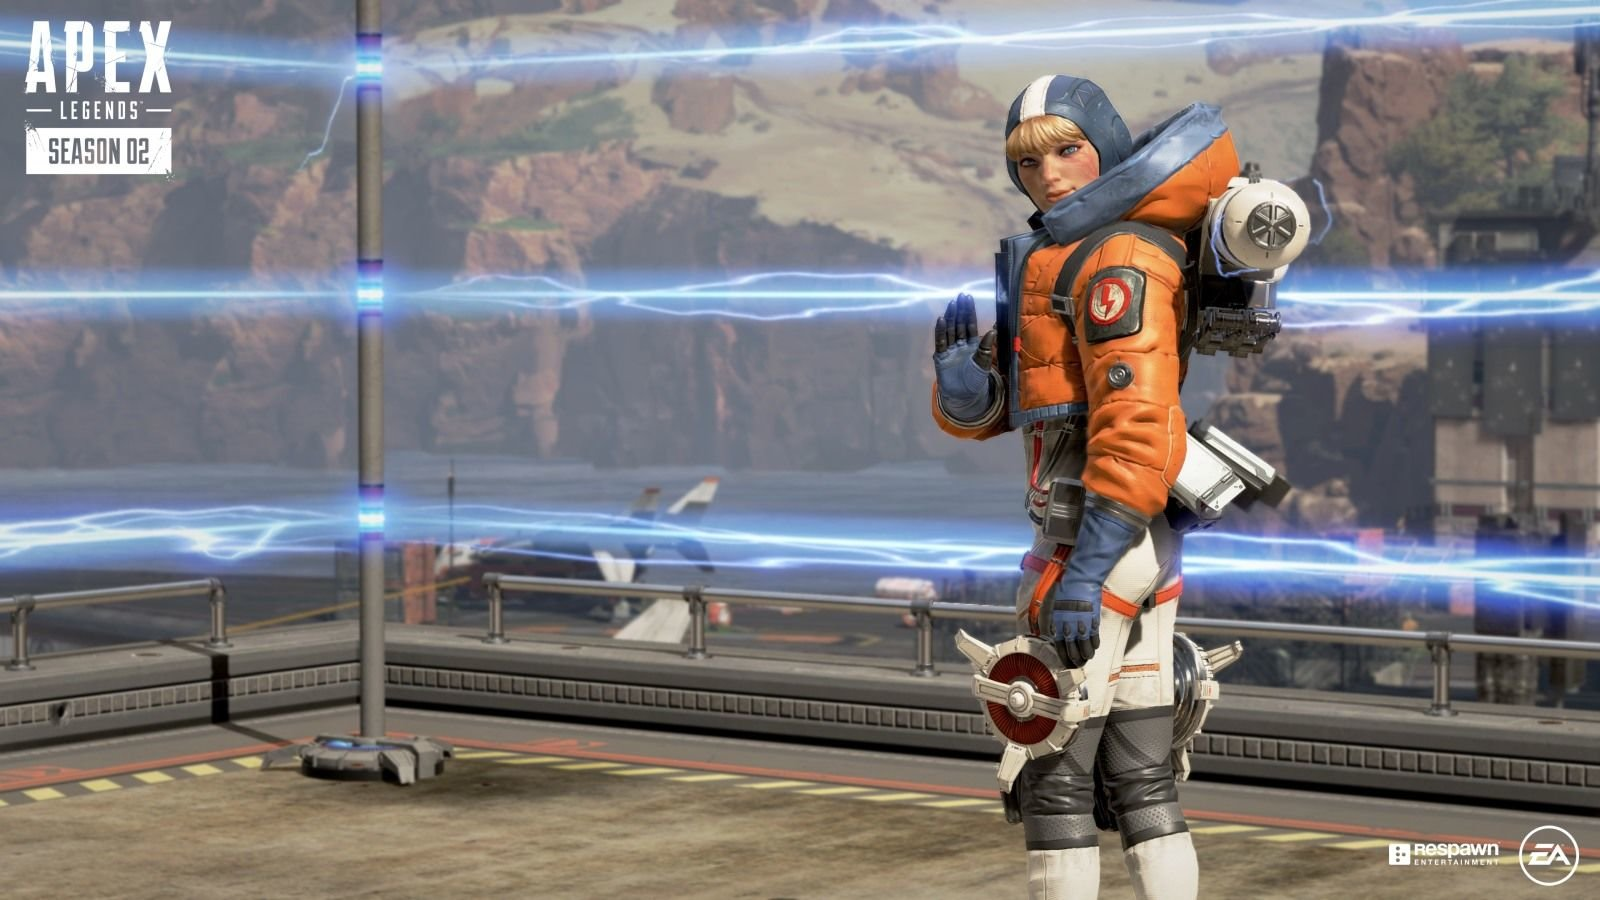 Apex Legends Leaks Reveals New Character, Weapon, and